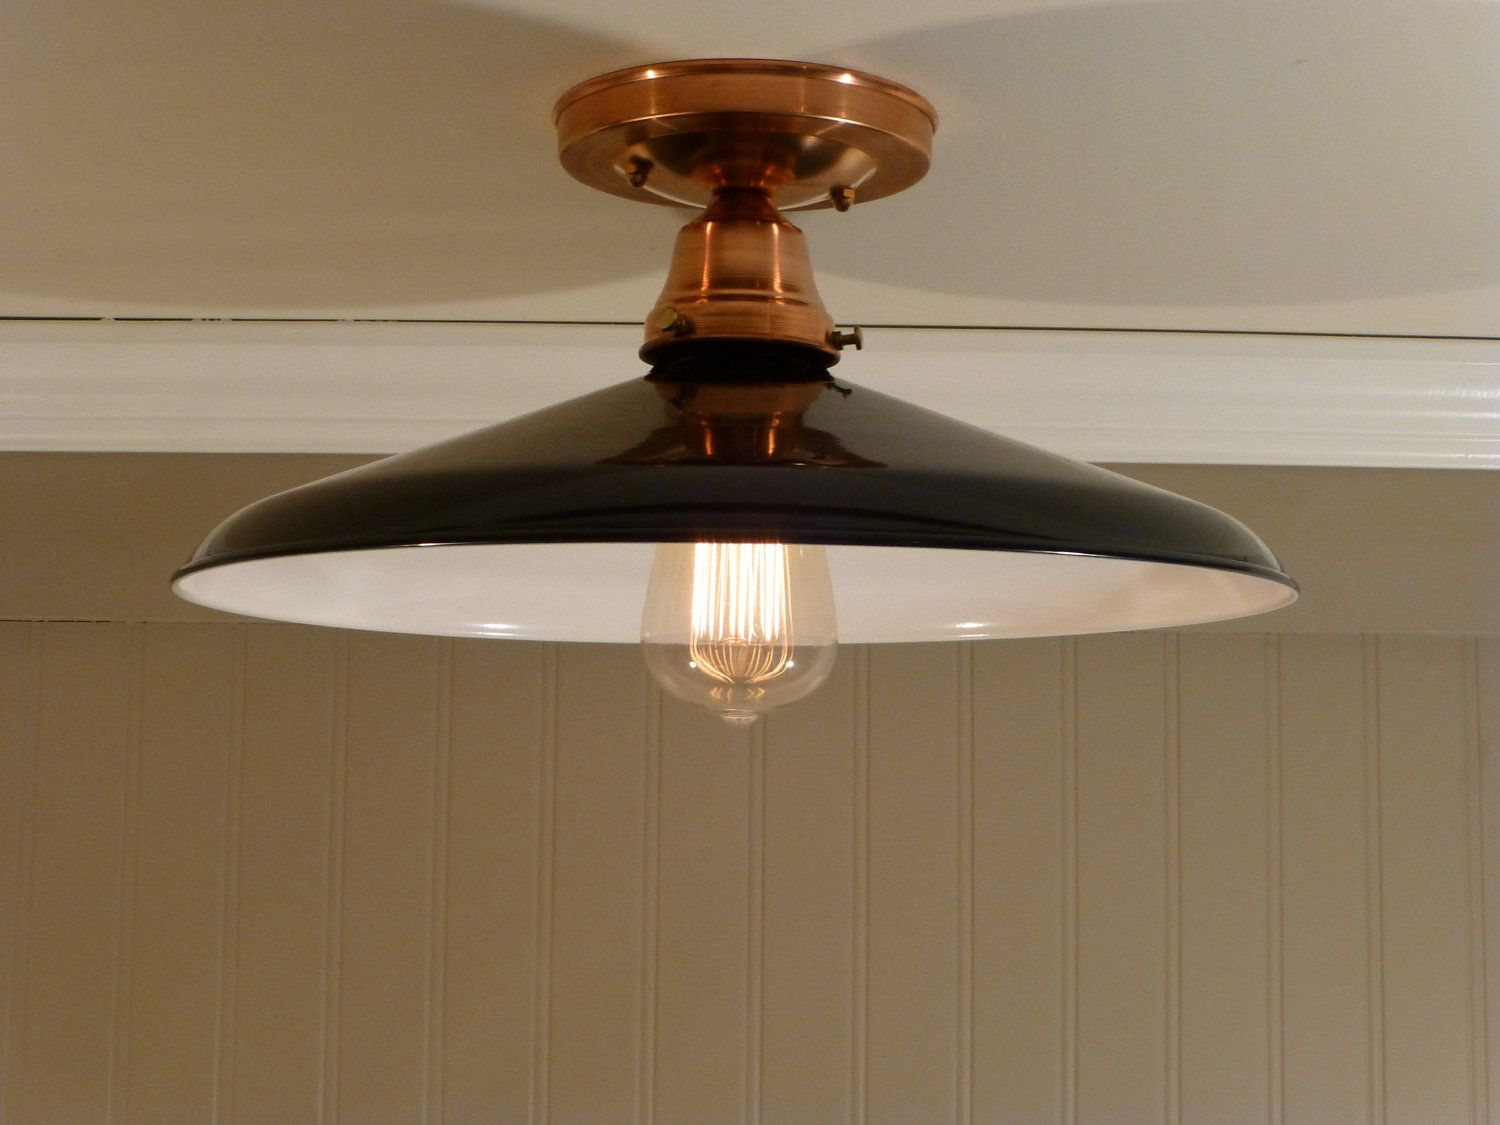 Living Room Ceiling Light 17 Best Ideas About Low Ceiling Lighting On Pinterest Ceiling